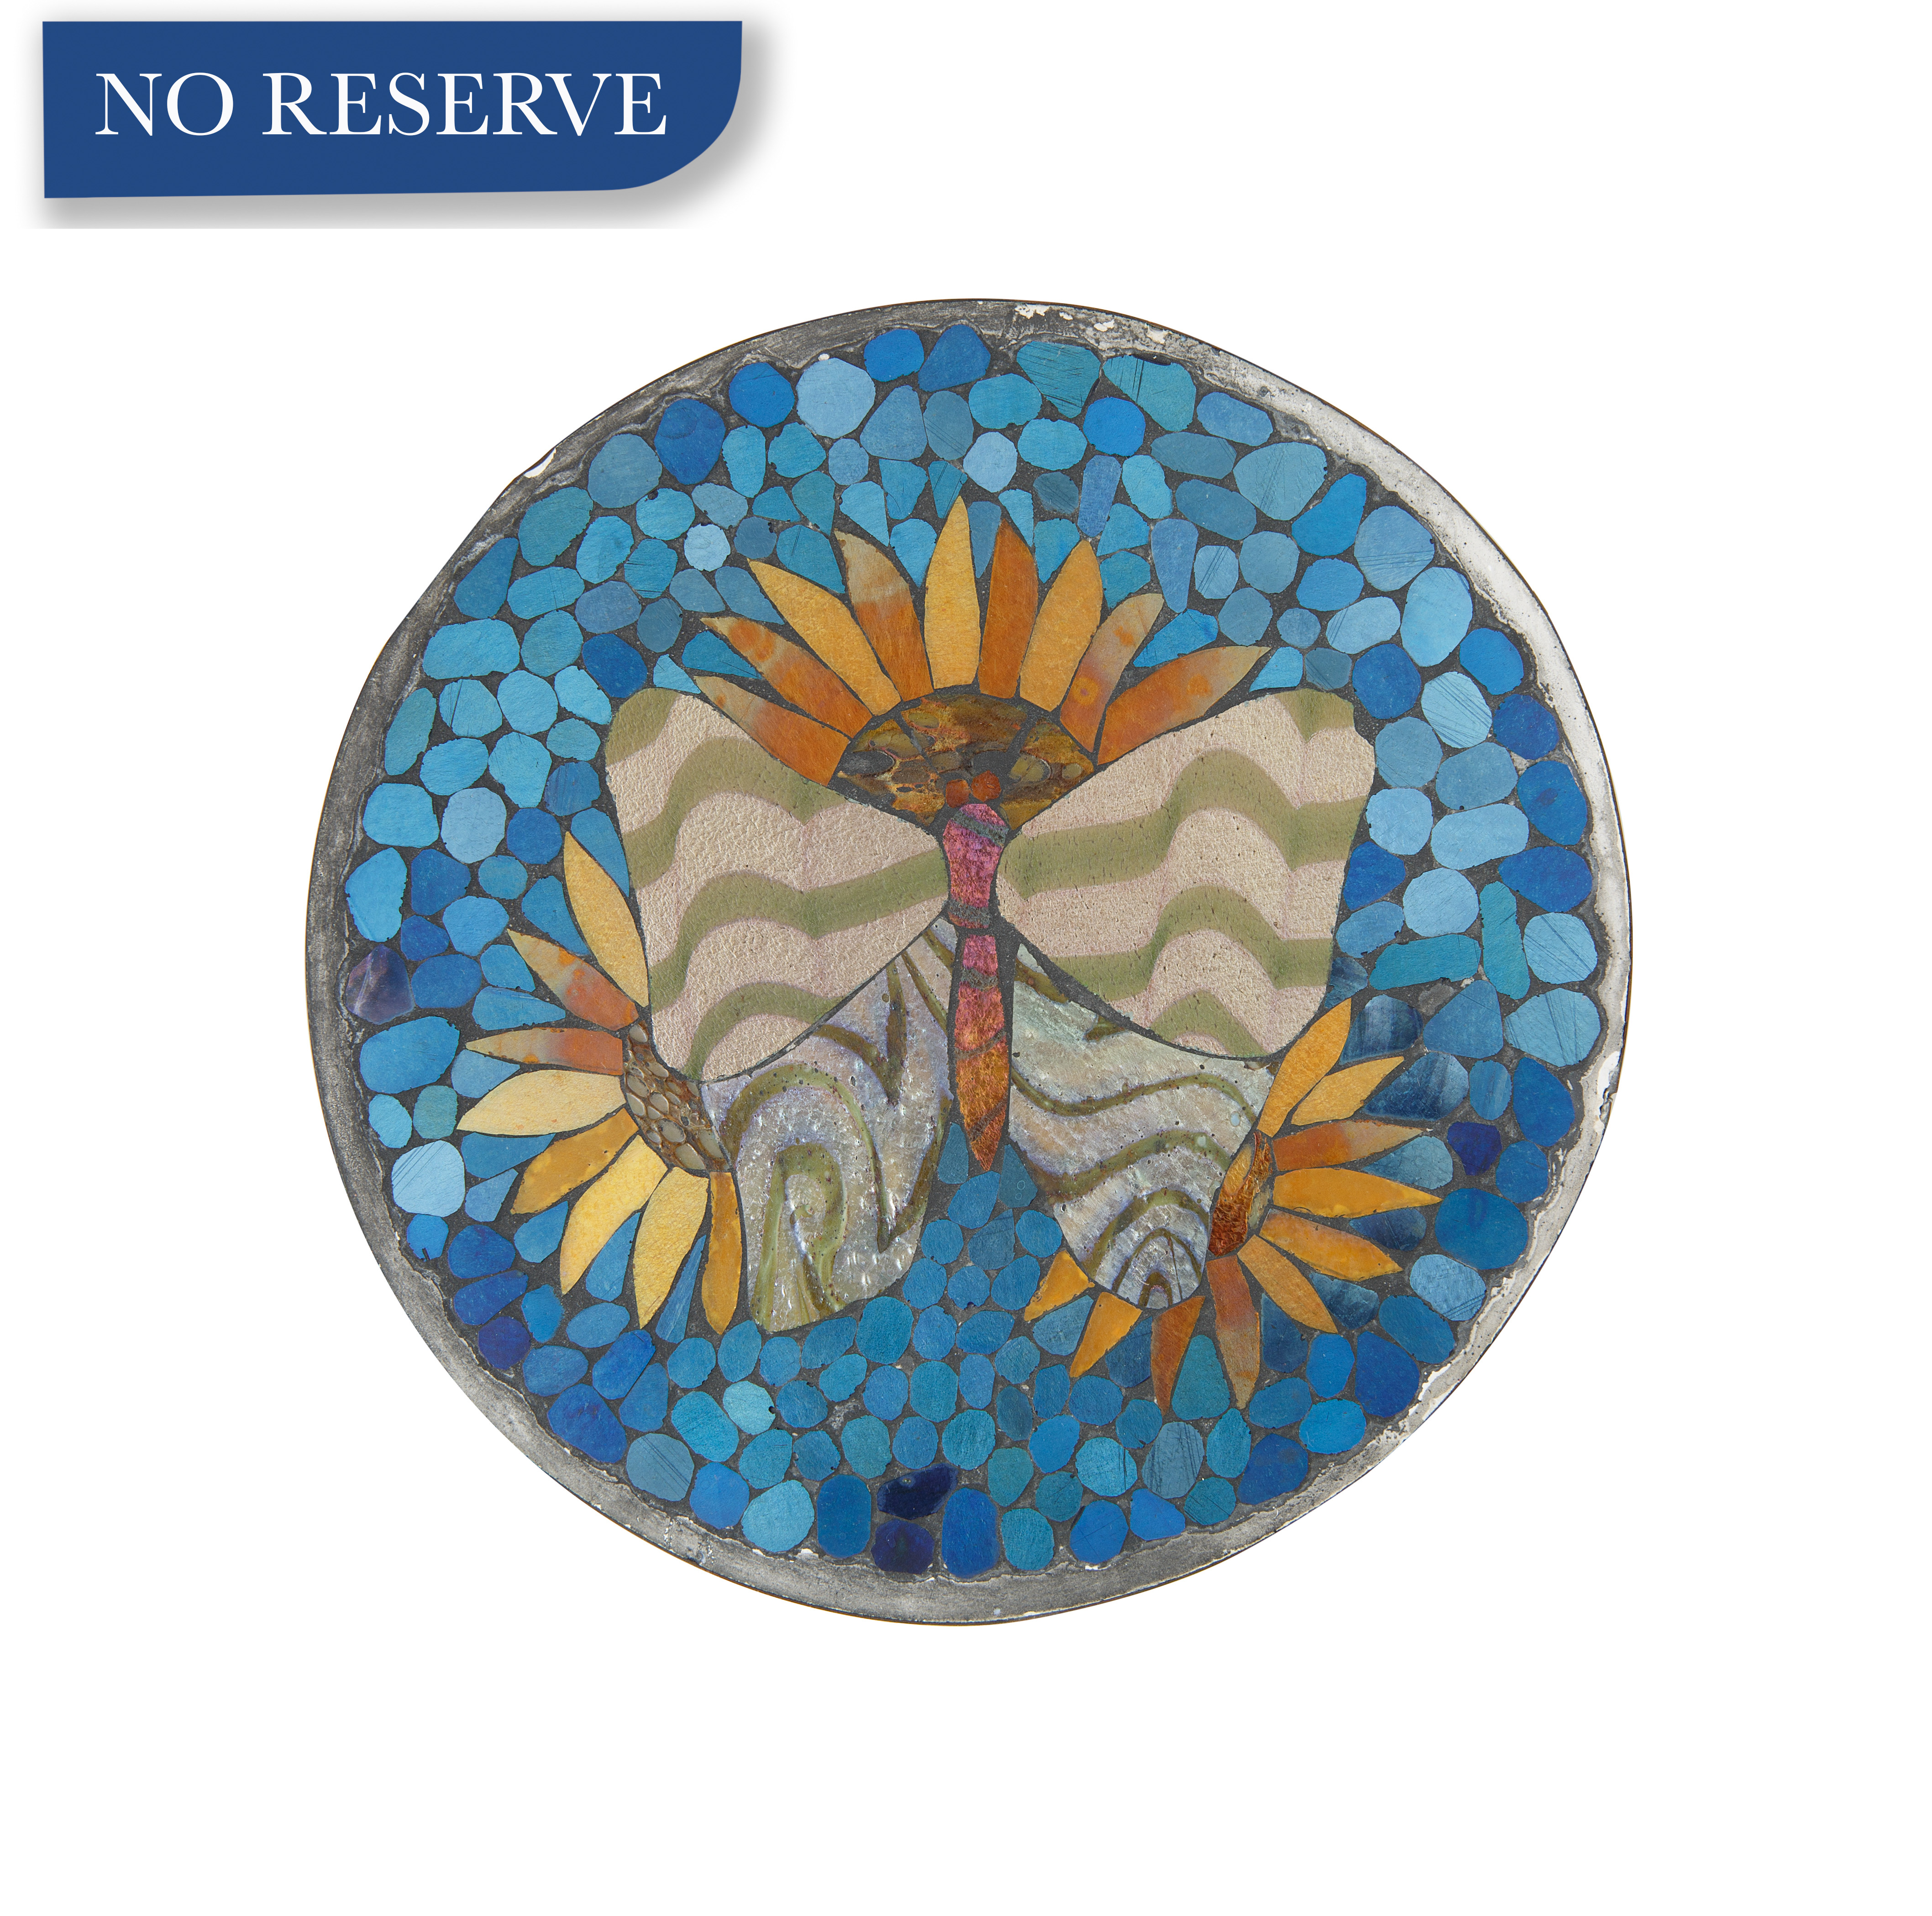 20TH CENTURY 'SUNFLOWER AND BUTTERFLY' TRIVET